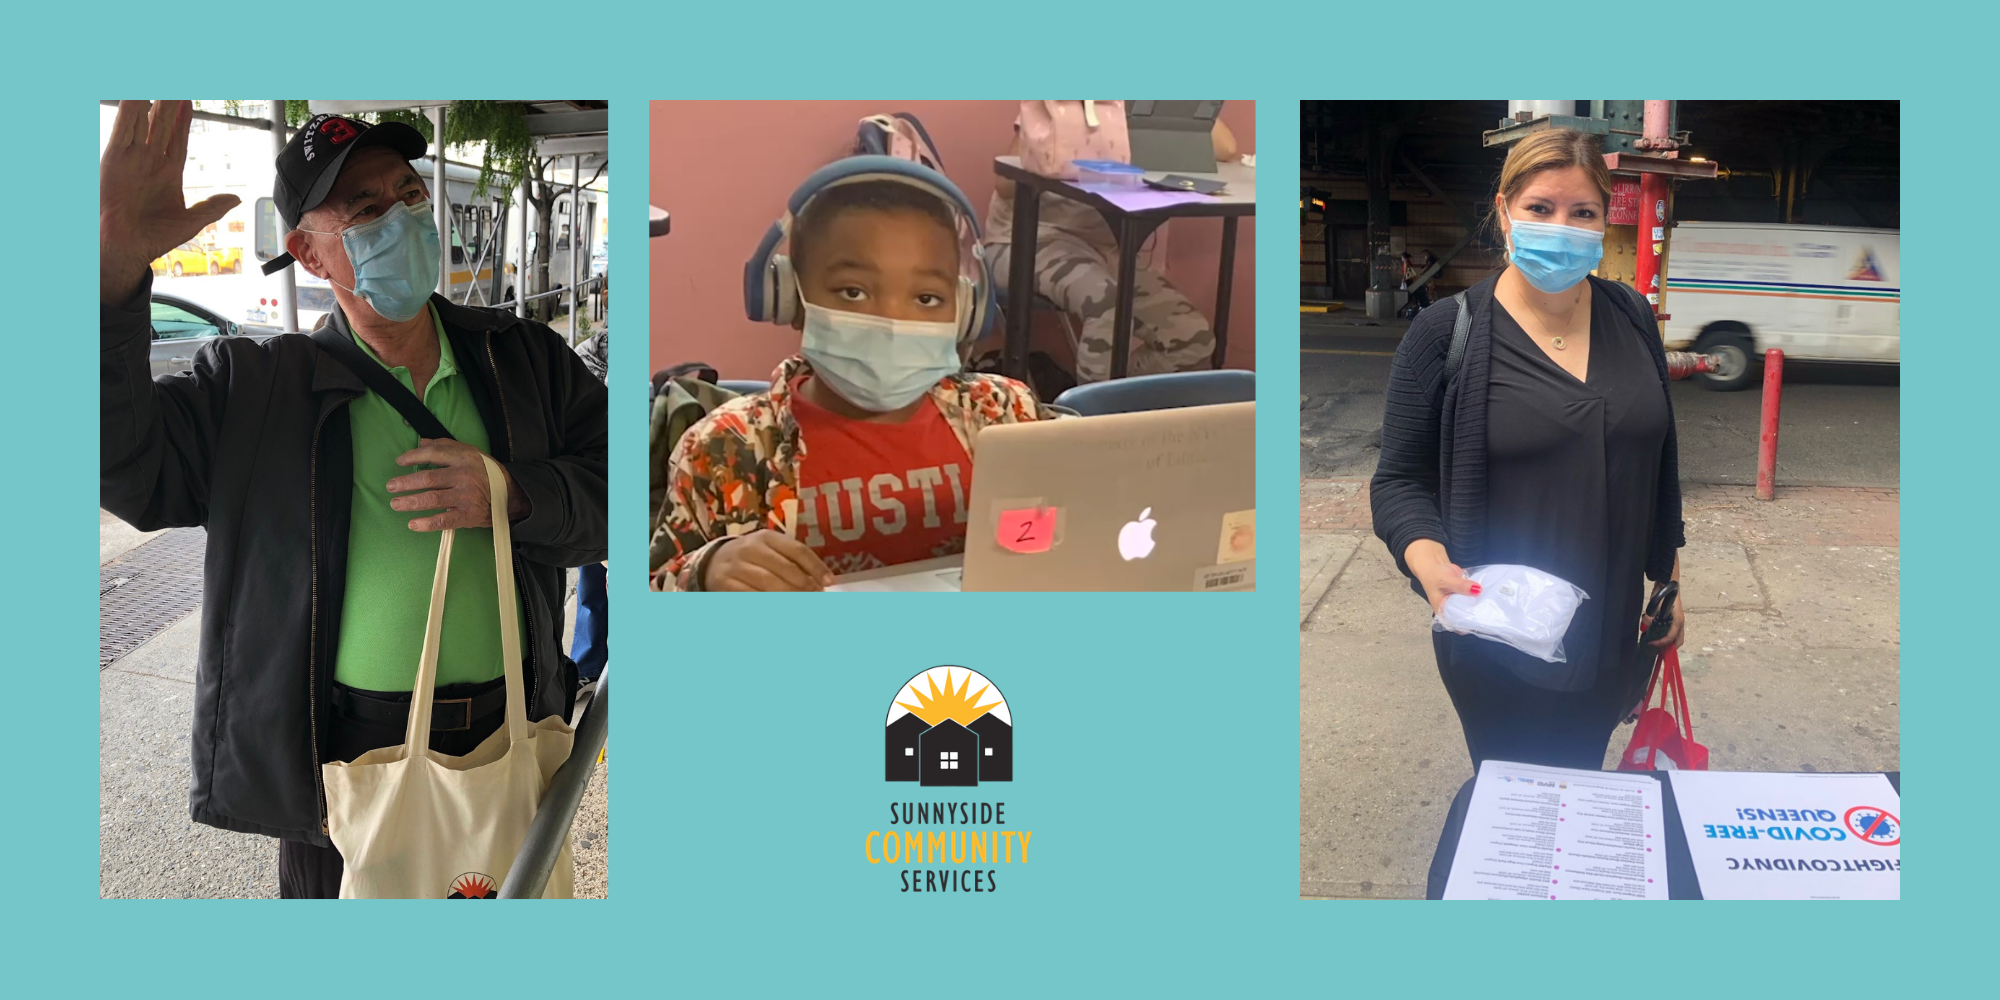 During the pandemic, Sunnyside Community Services has been helping our community with free groceries, masks, wellness supports, and virtual programs.